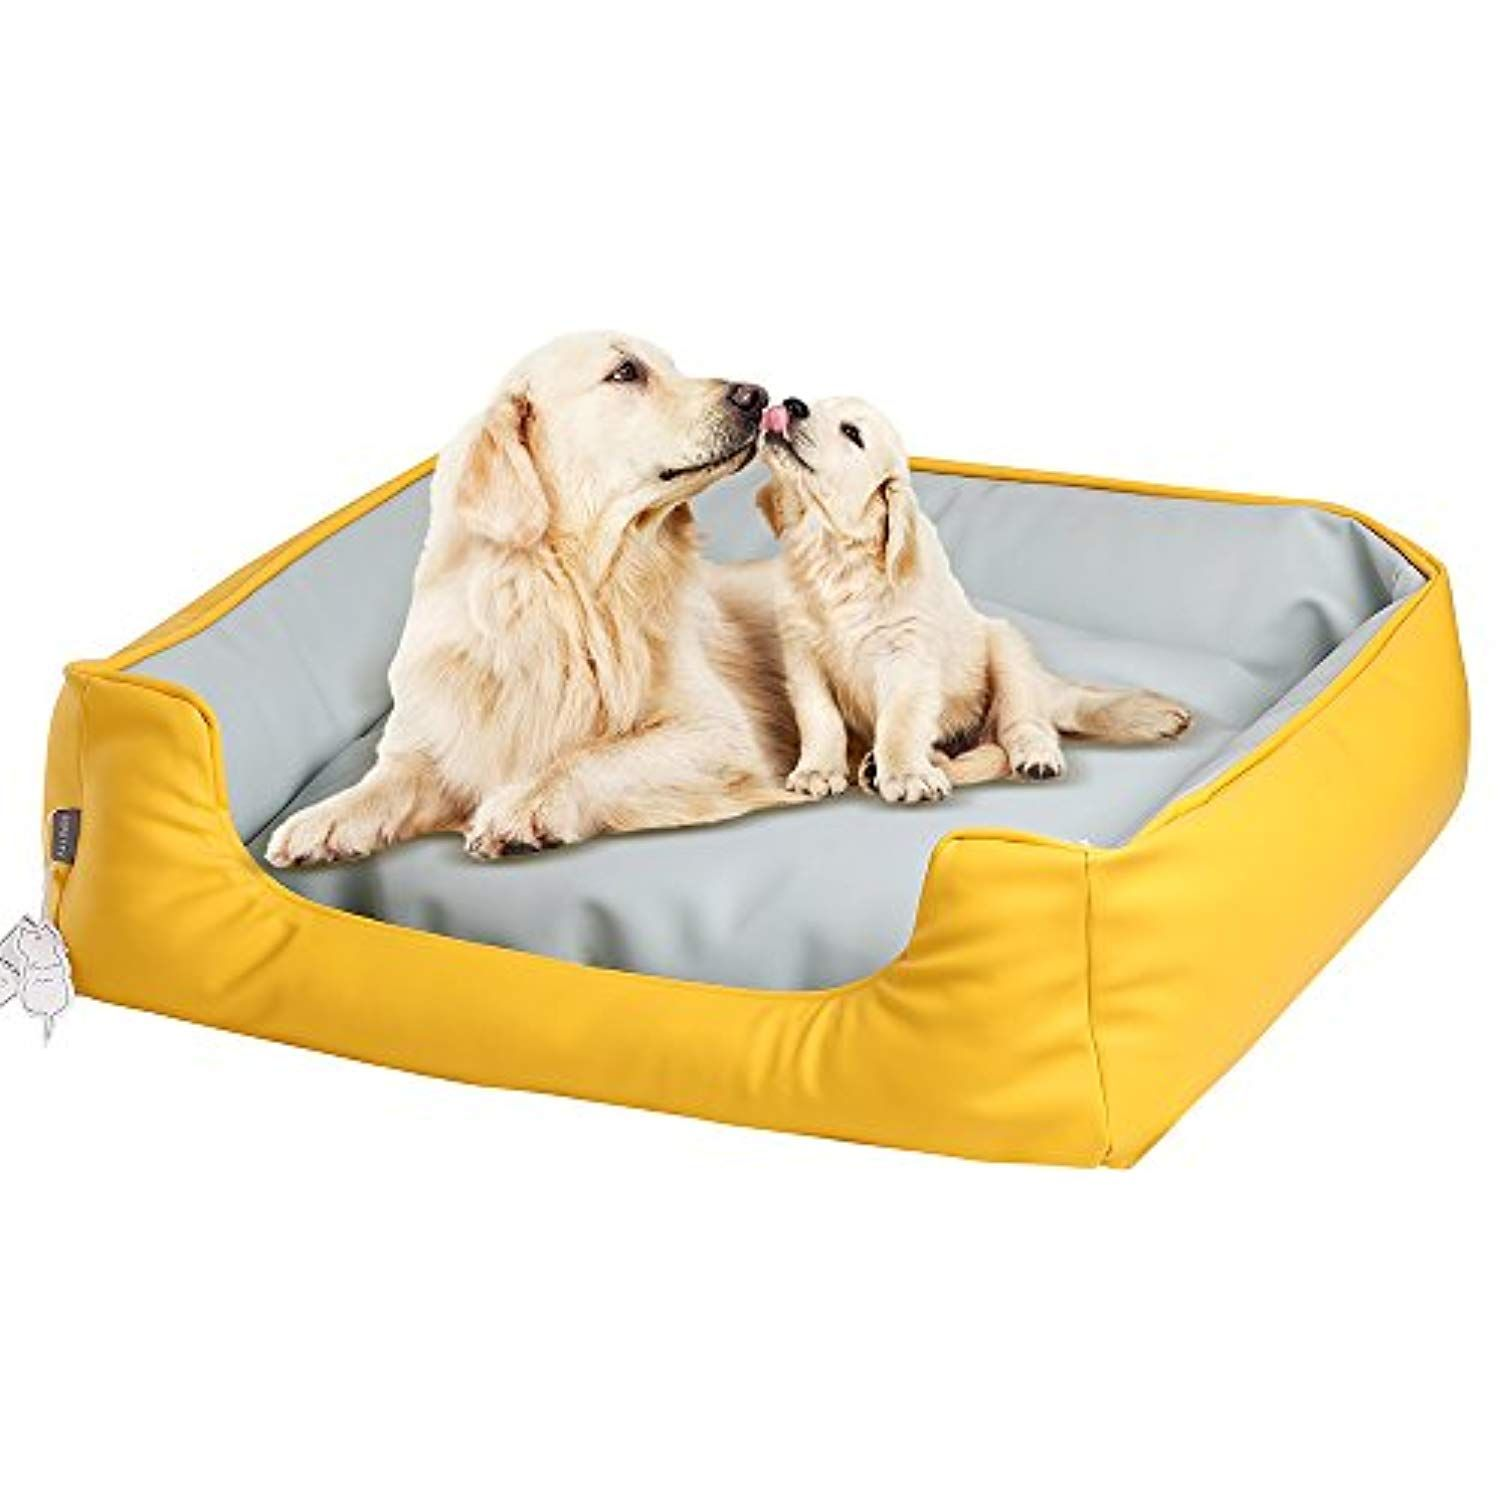 Sepetty Leather Dog Cat Bed Luxurious Dog Bed Removable Easy To Clean And Durable Pet Bed Designed For All Seasons I ˆ34 Leather Dog Bed Dog Bed Luxury Dog Cat